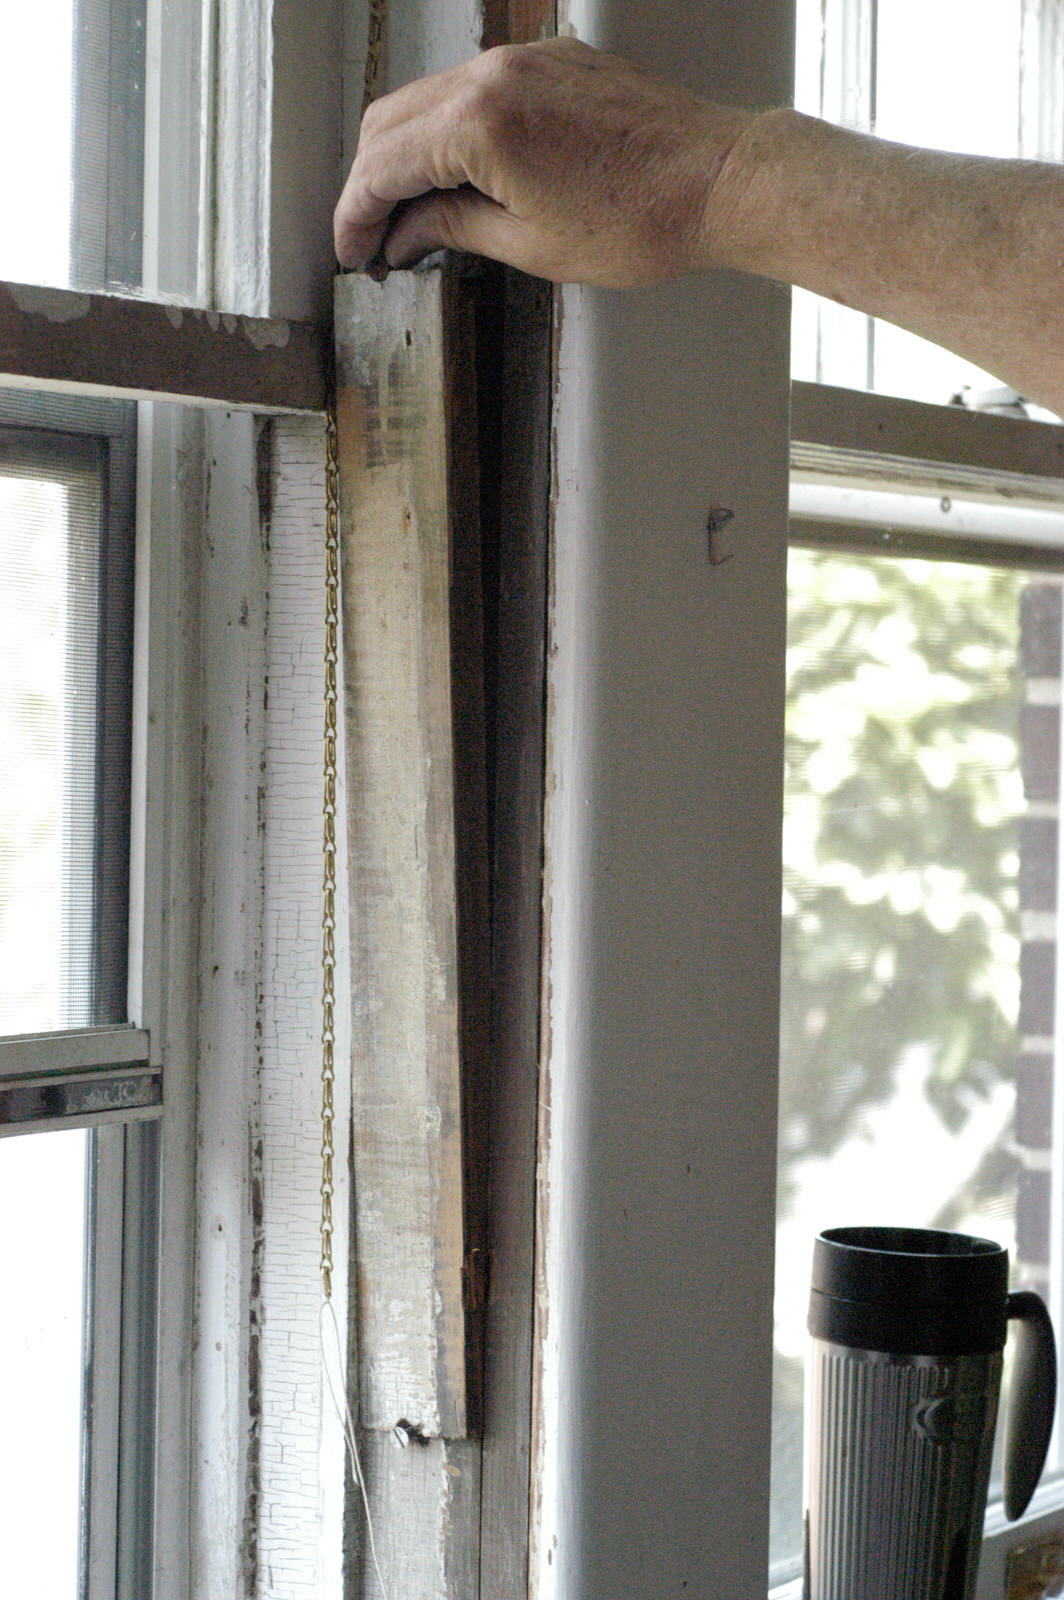 If repairing or restoring historic window sashes,prices could range from under $100 per window for basic repairs to more than $250 per window for more involved restoration.